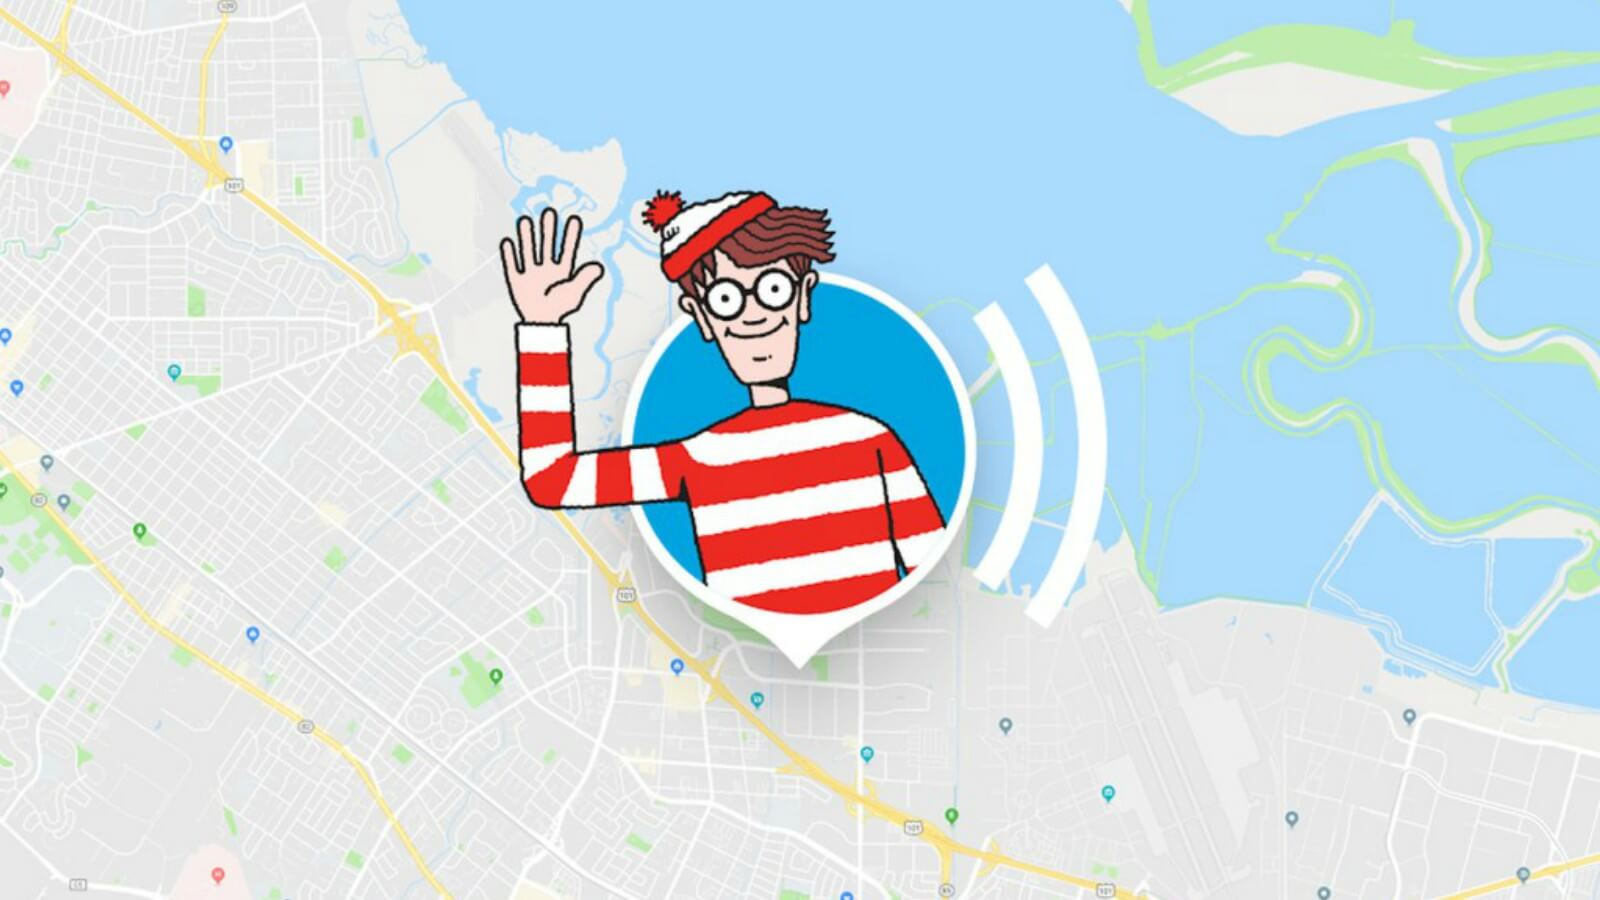 Busca a Wally en Google Maps